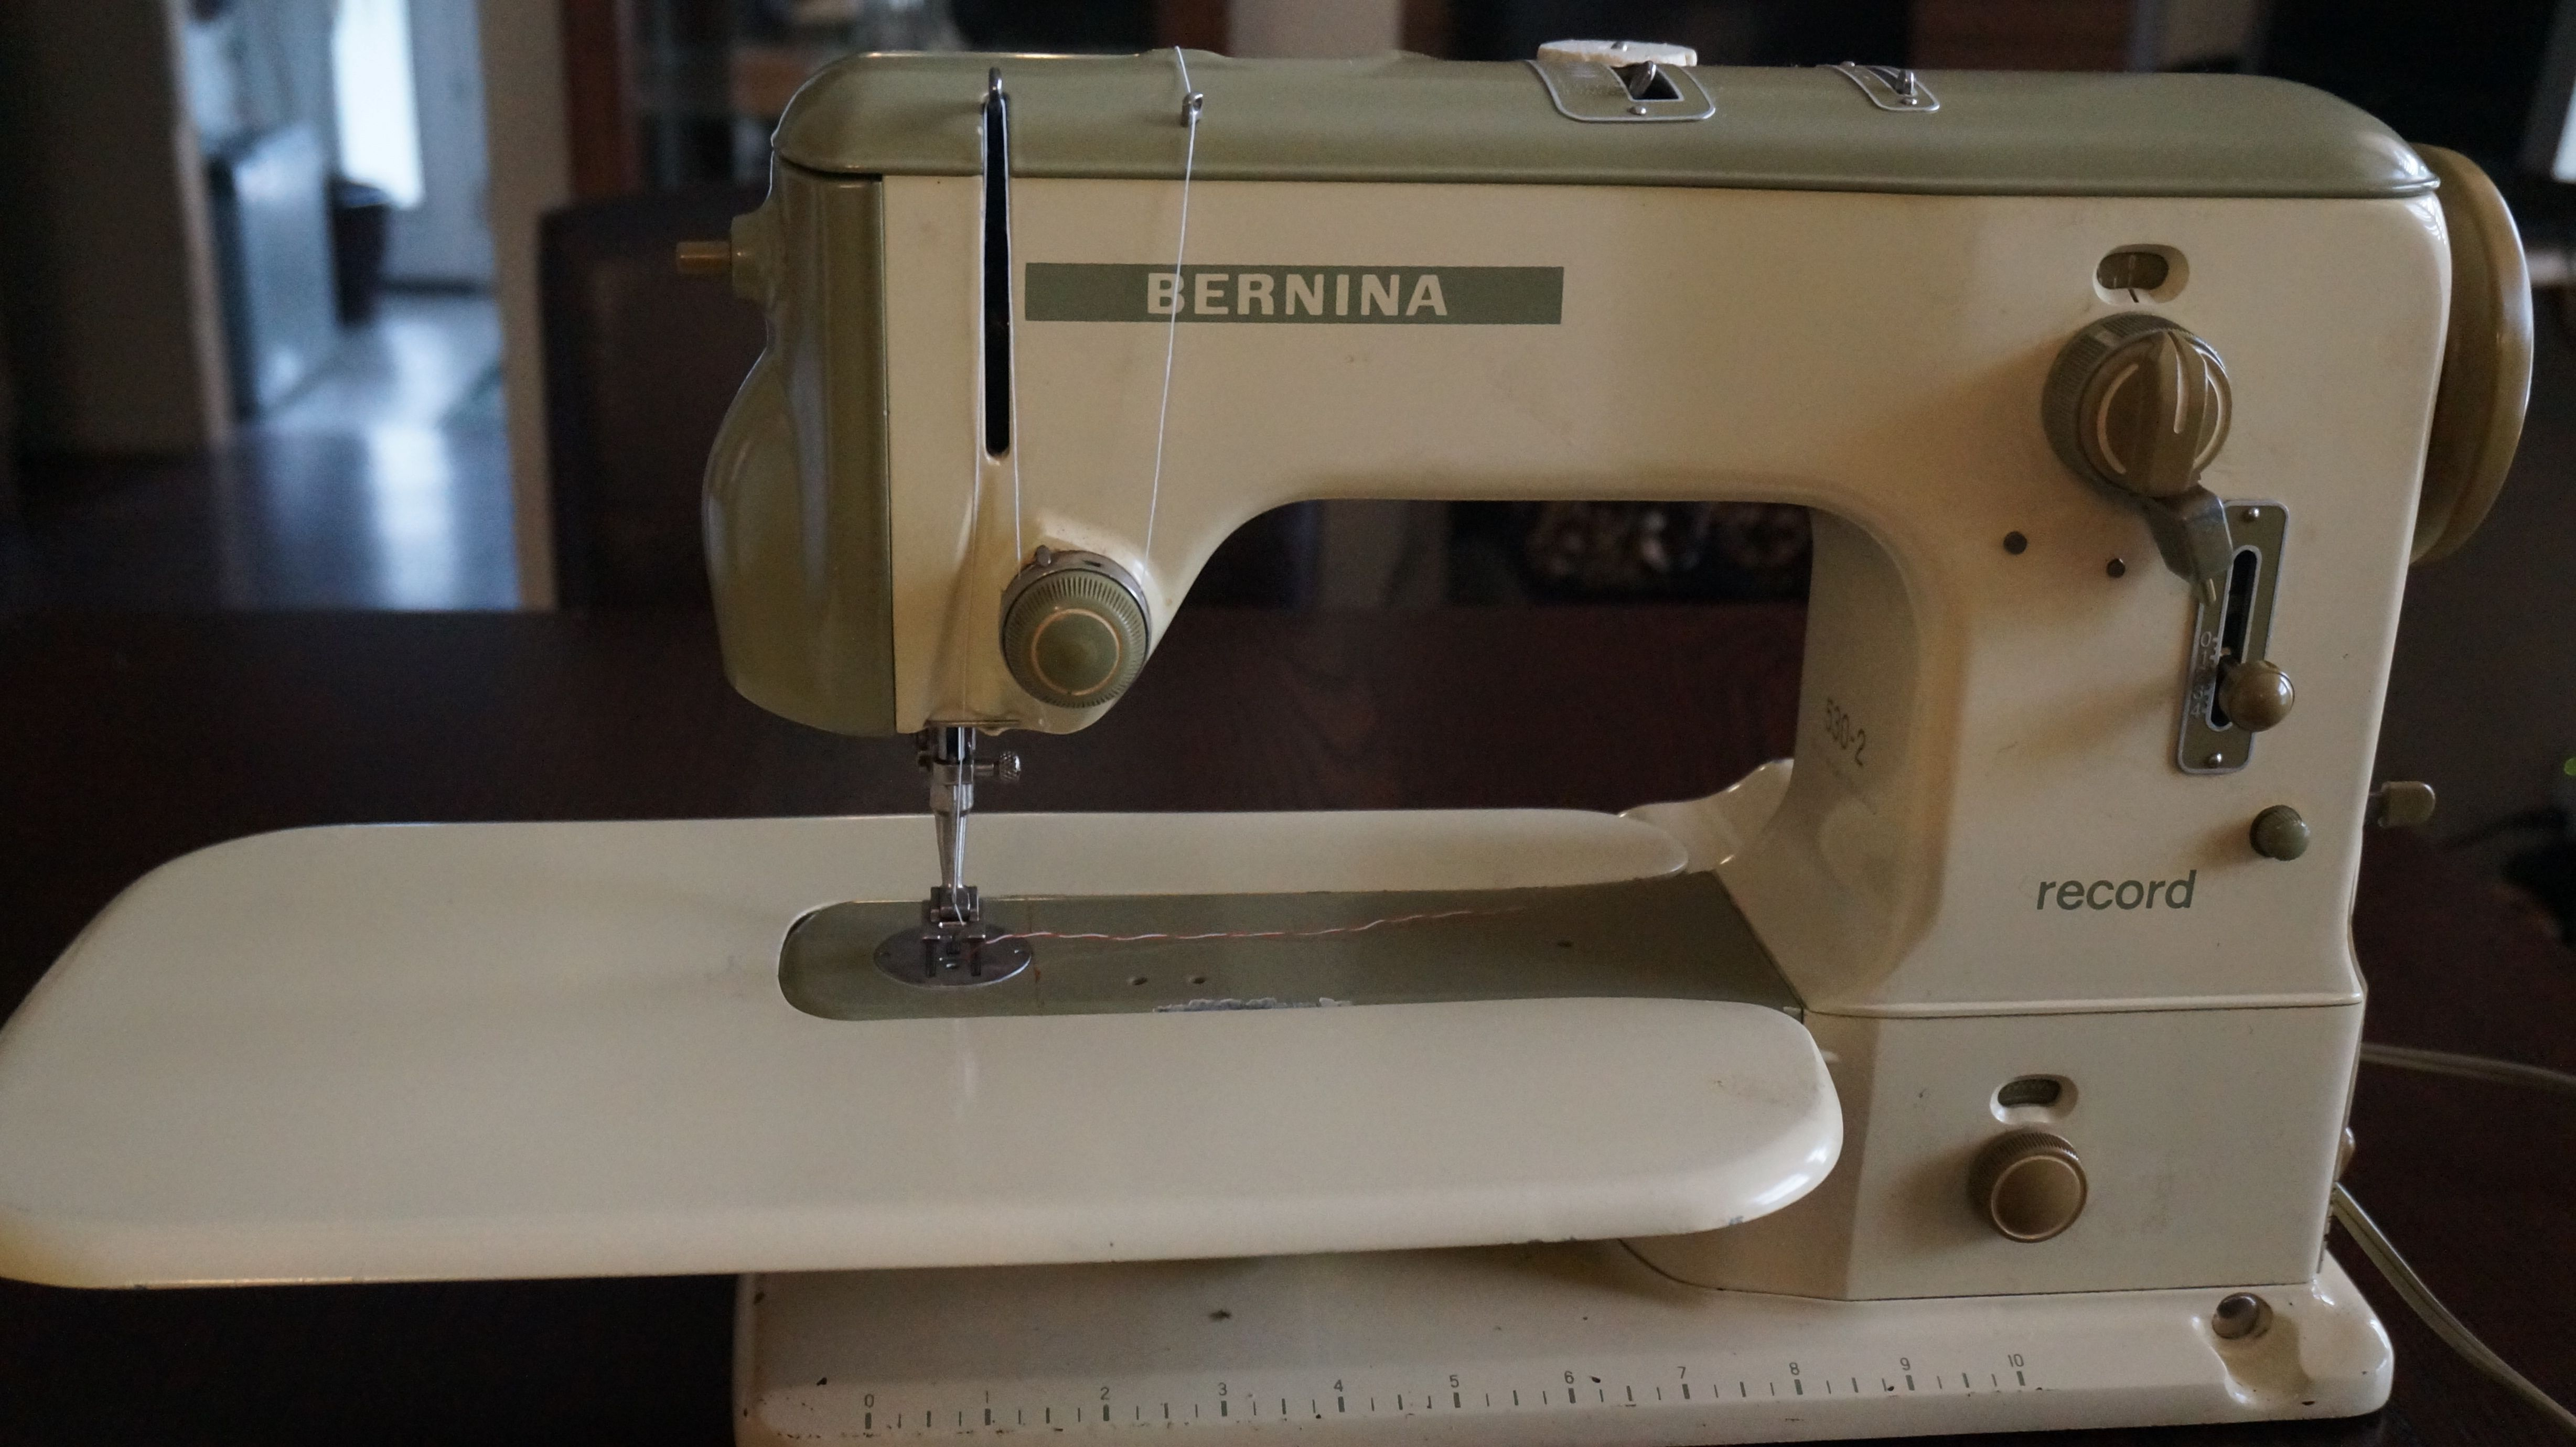 Bernina Record 530-2 Made in 1963 So The salesman was a 12